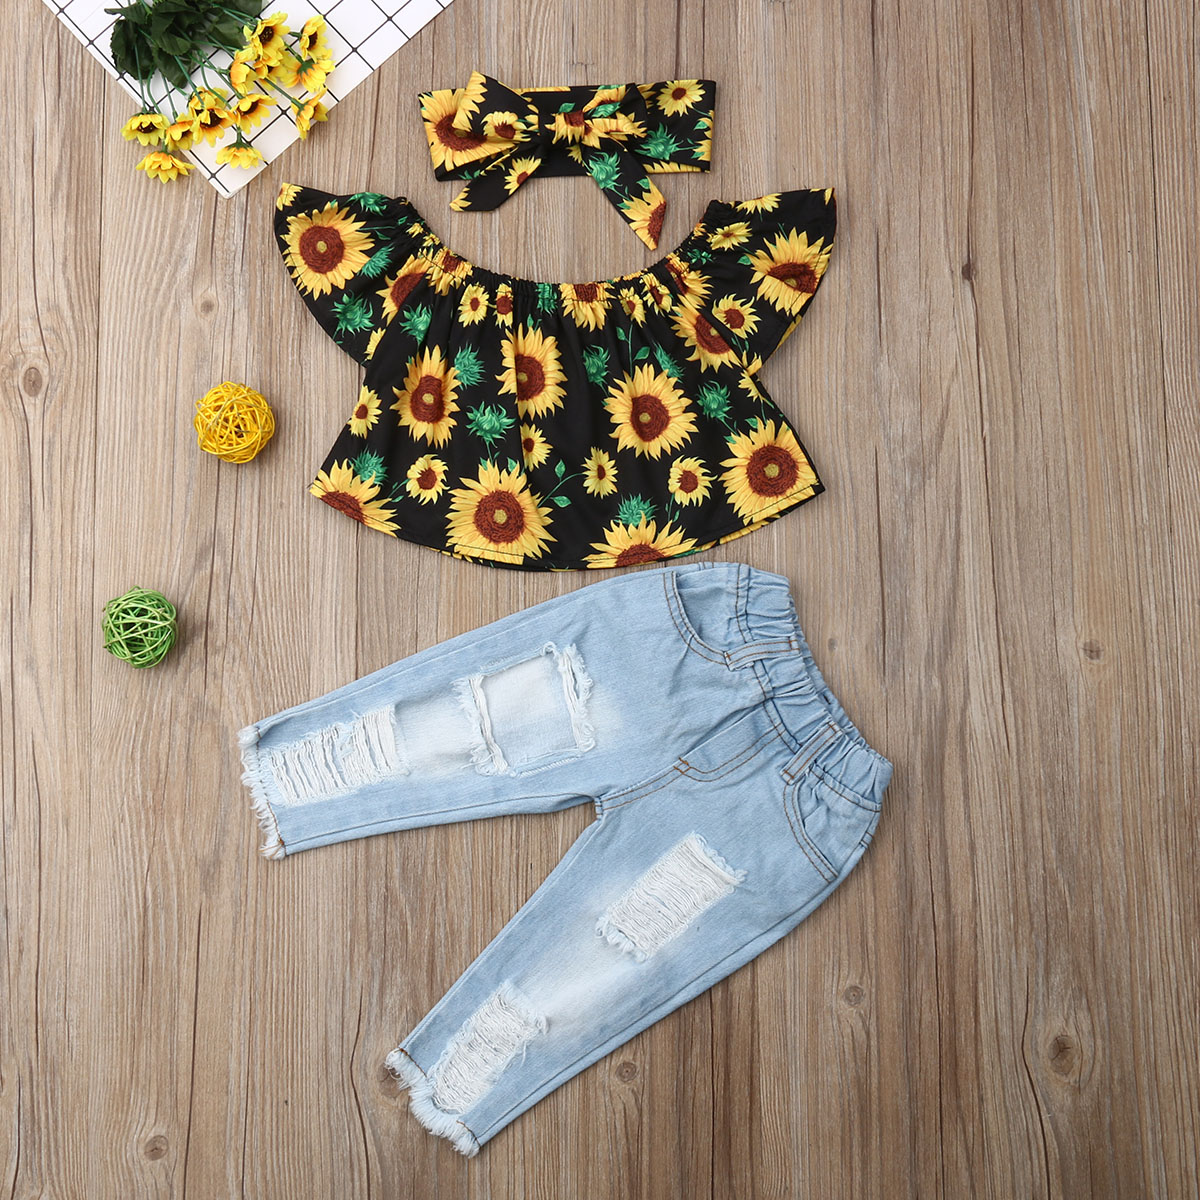 Pudcoco Toddler Baby Girl Clothes Off Shoulder Sunflower Print Tops Ripped Denim Pants Headband 3Pcs Outfits Summer Clothes